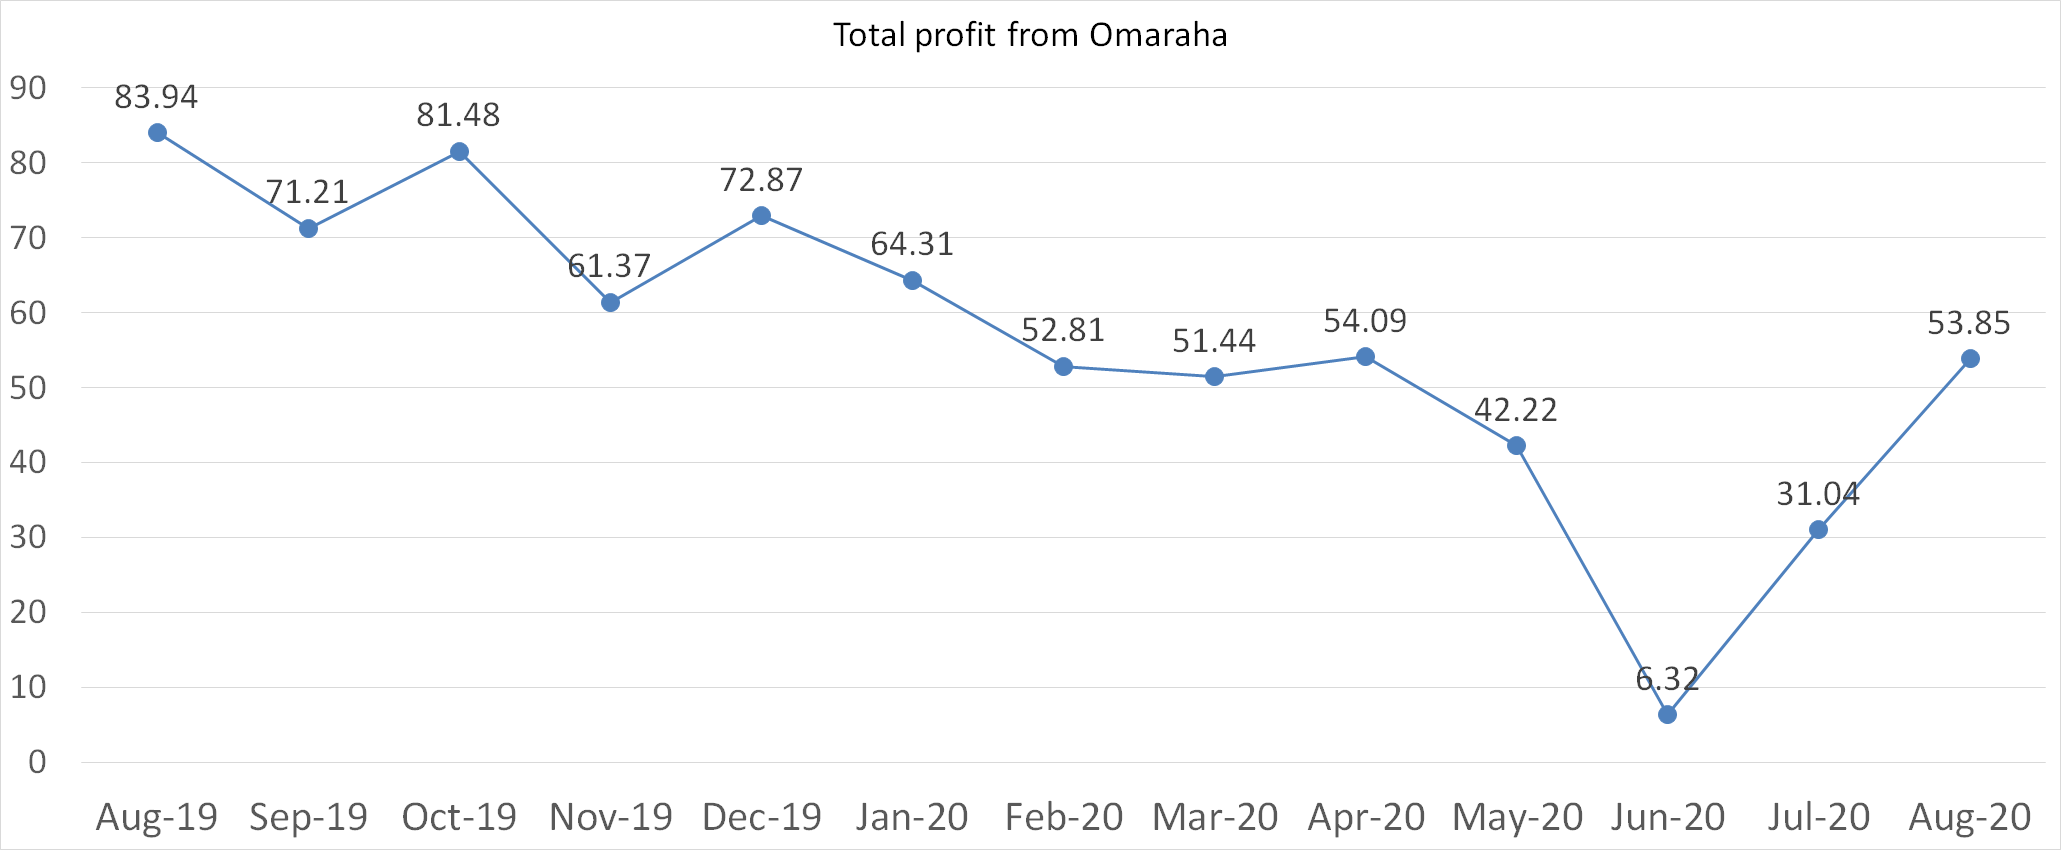 Total profit from Omaraha august 2020